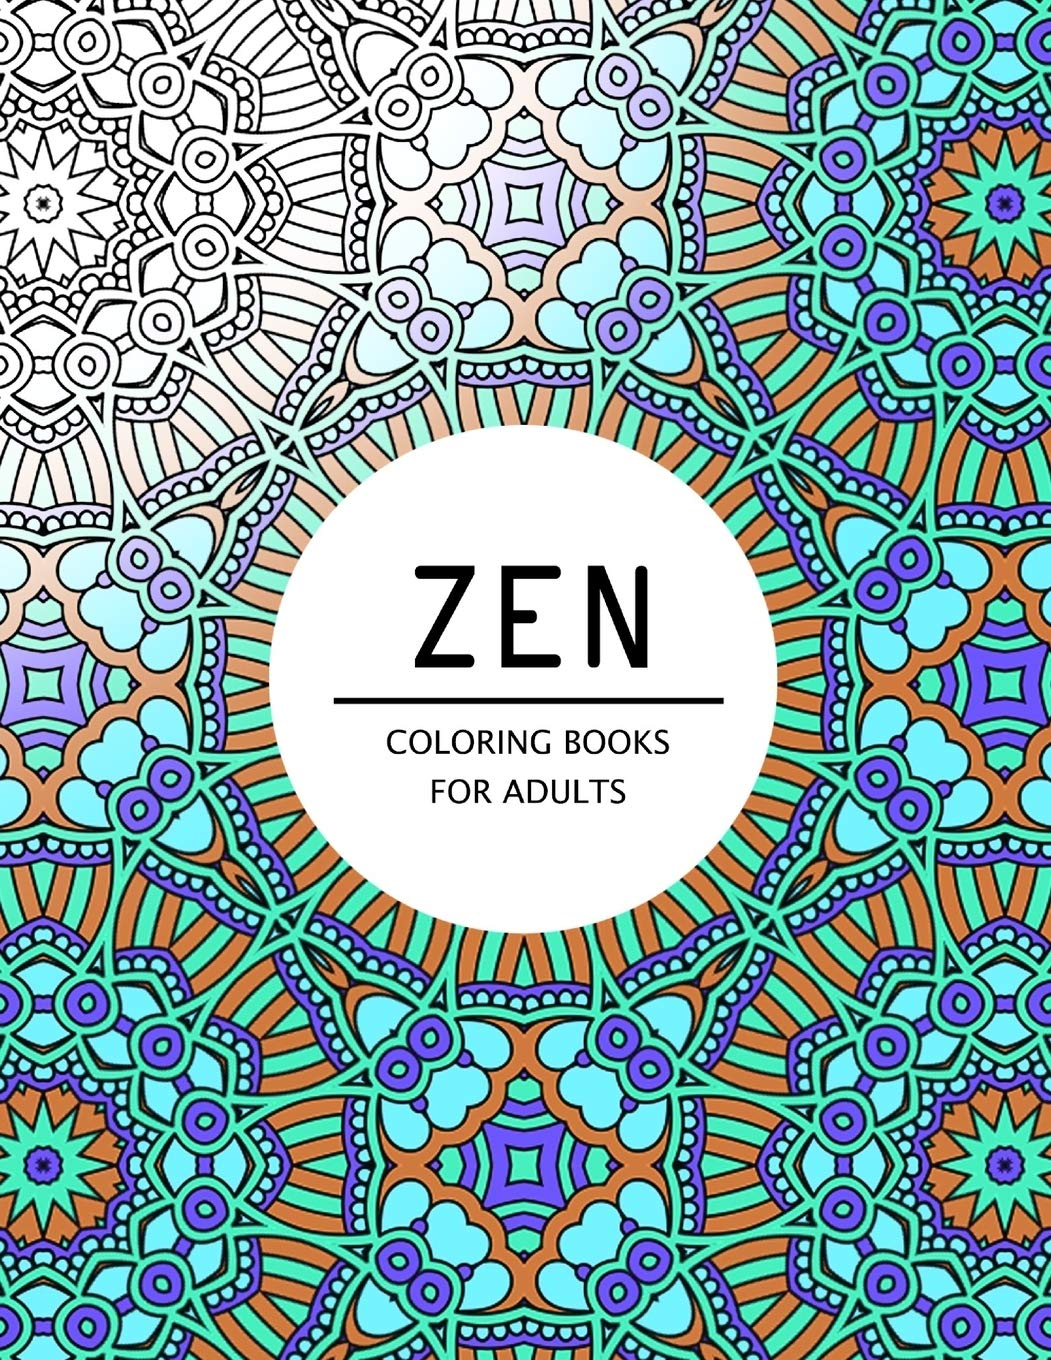 Amazon Com Zen Coloring Books For Adults Coloring Pages For Adults 9781534911154 Mindfulness Publishing Books